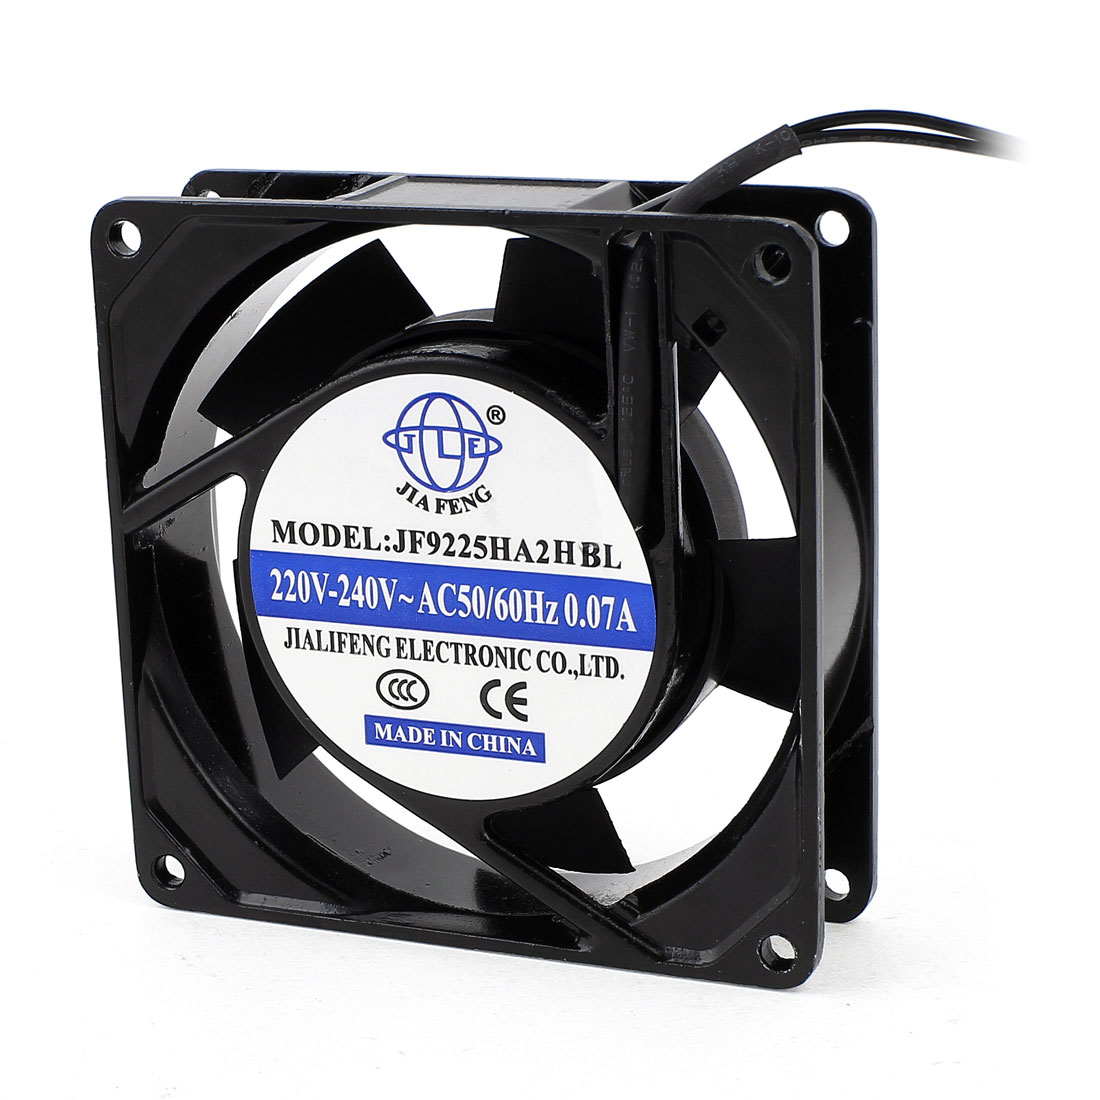 AC 220V-240V 0.07A 2 Wires Ball Bearing Axial Cooling Fan...